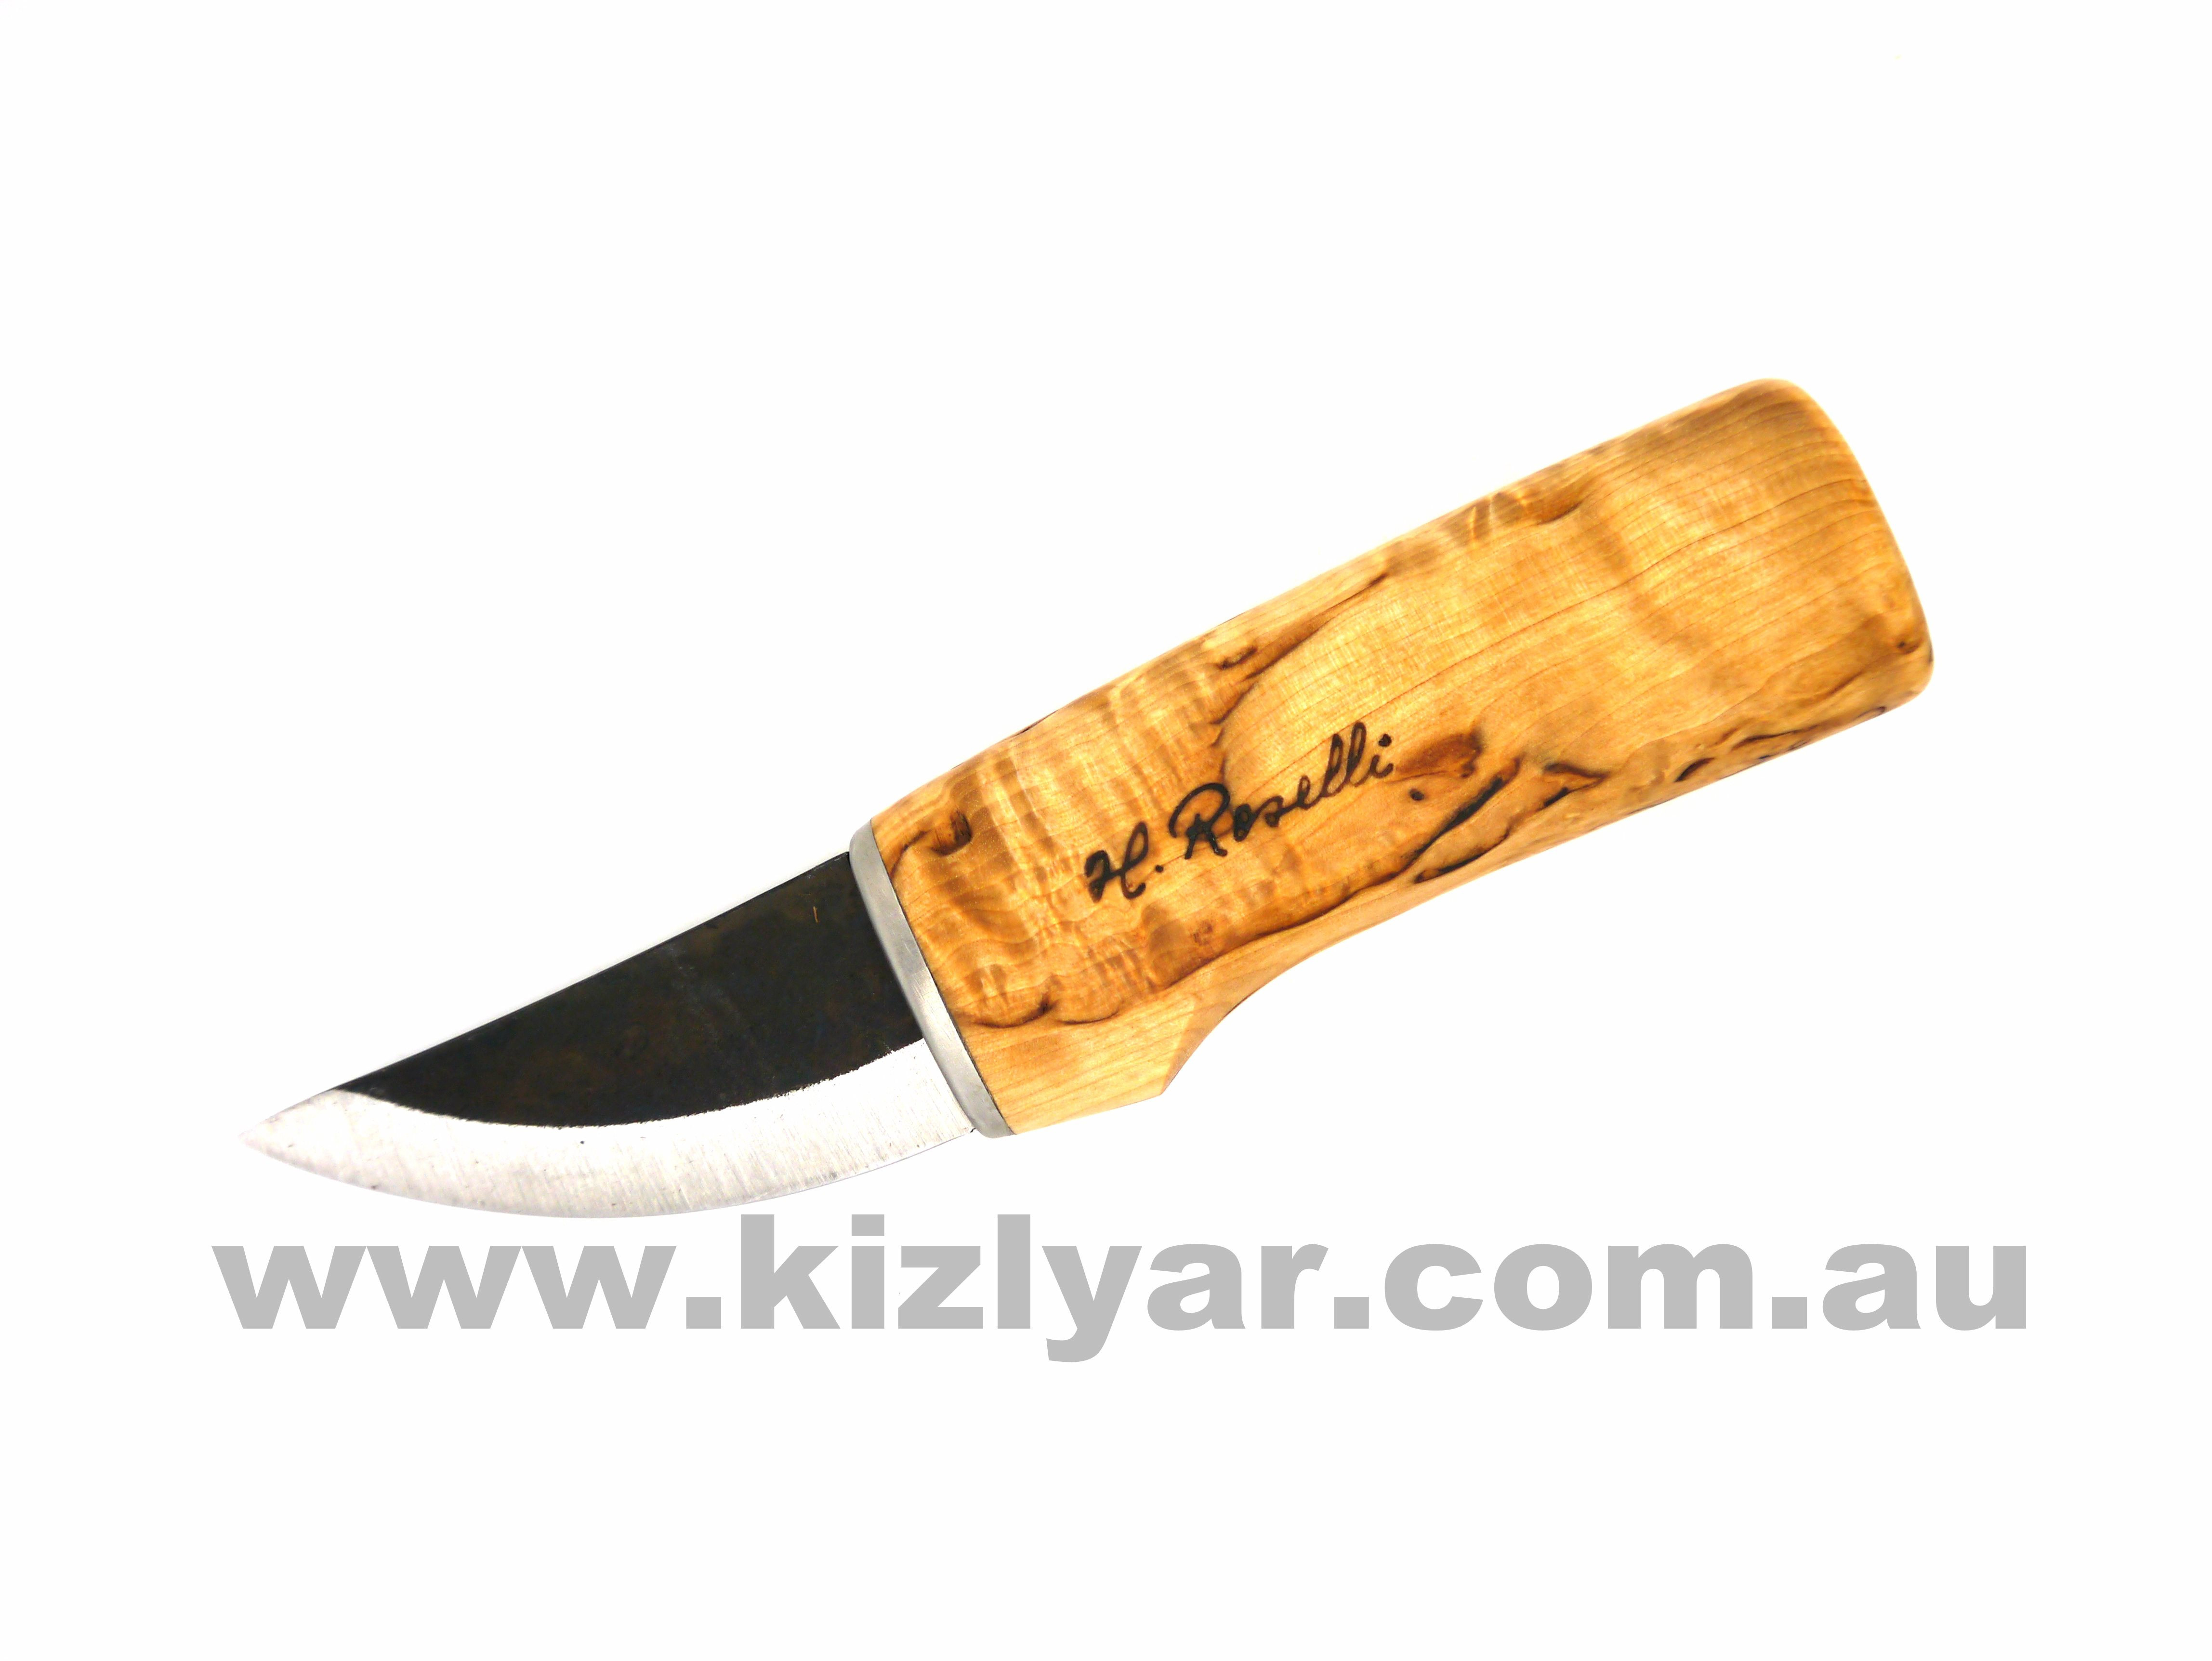 H Roselli Kizlyar Knives Australia, Knives and Outdoor Gear